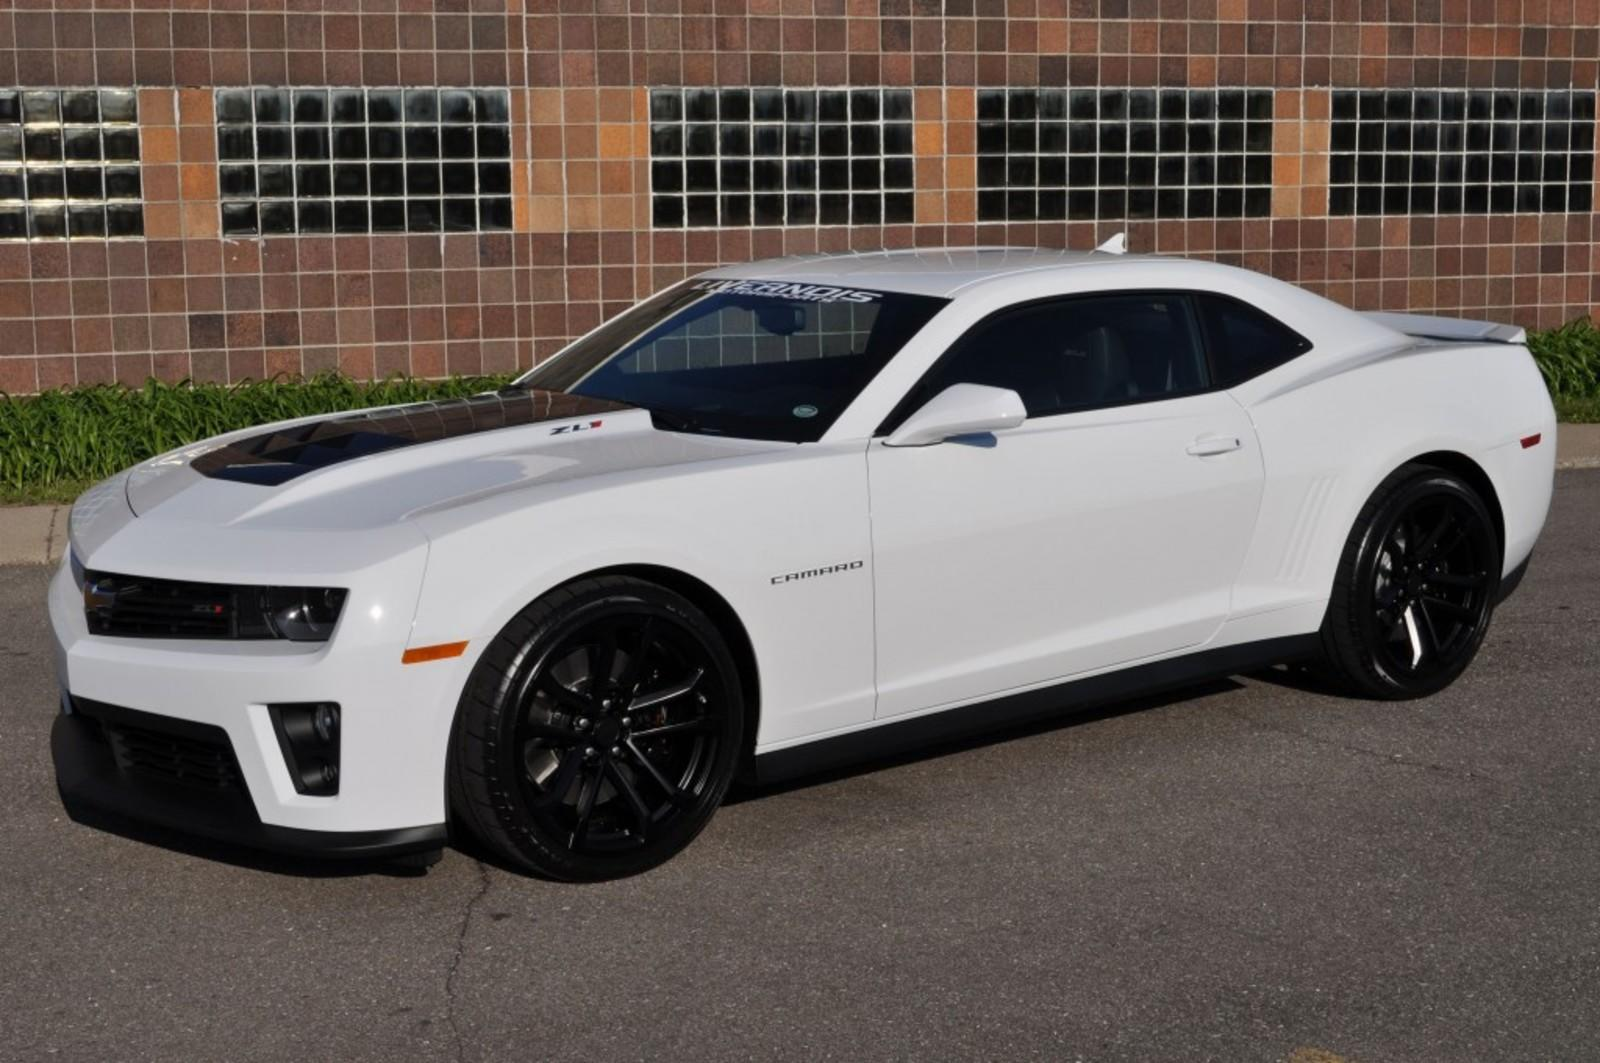 2013 Chevrolet Camaro Zl1 By Livernois Motorsports Review